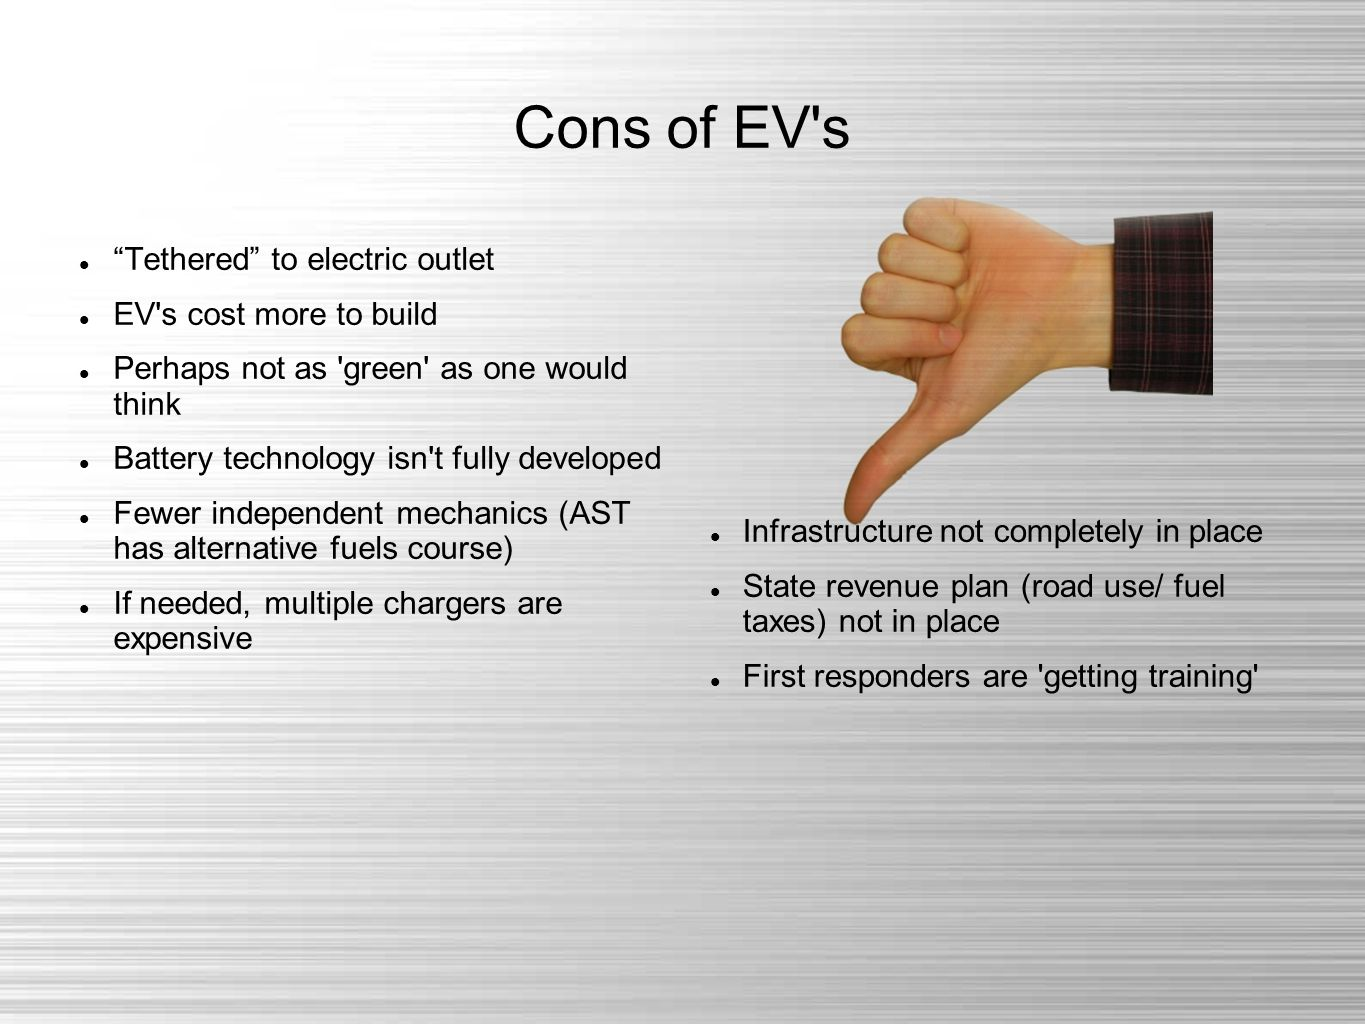 Cons of EV s Tethered to electric outlet EV s cost more to build Perhaps not as green as one would think Battery technology isn t fully developed Fewer independent mechanics (AST has alternative fuels course) If needed, multiple chargers are expensive Infrastructure not completely in place State revenue plan (road use/ fuel taxes) not in place First responders are getting training